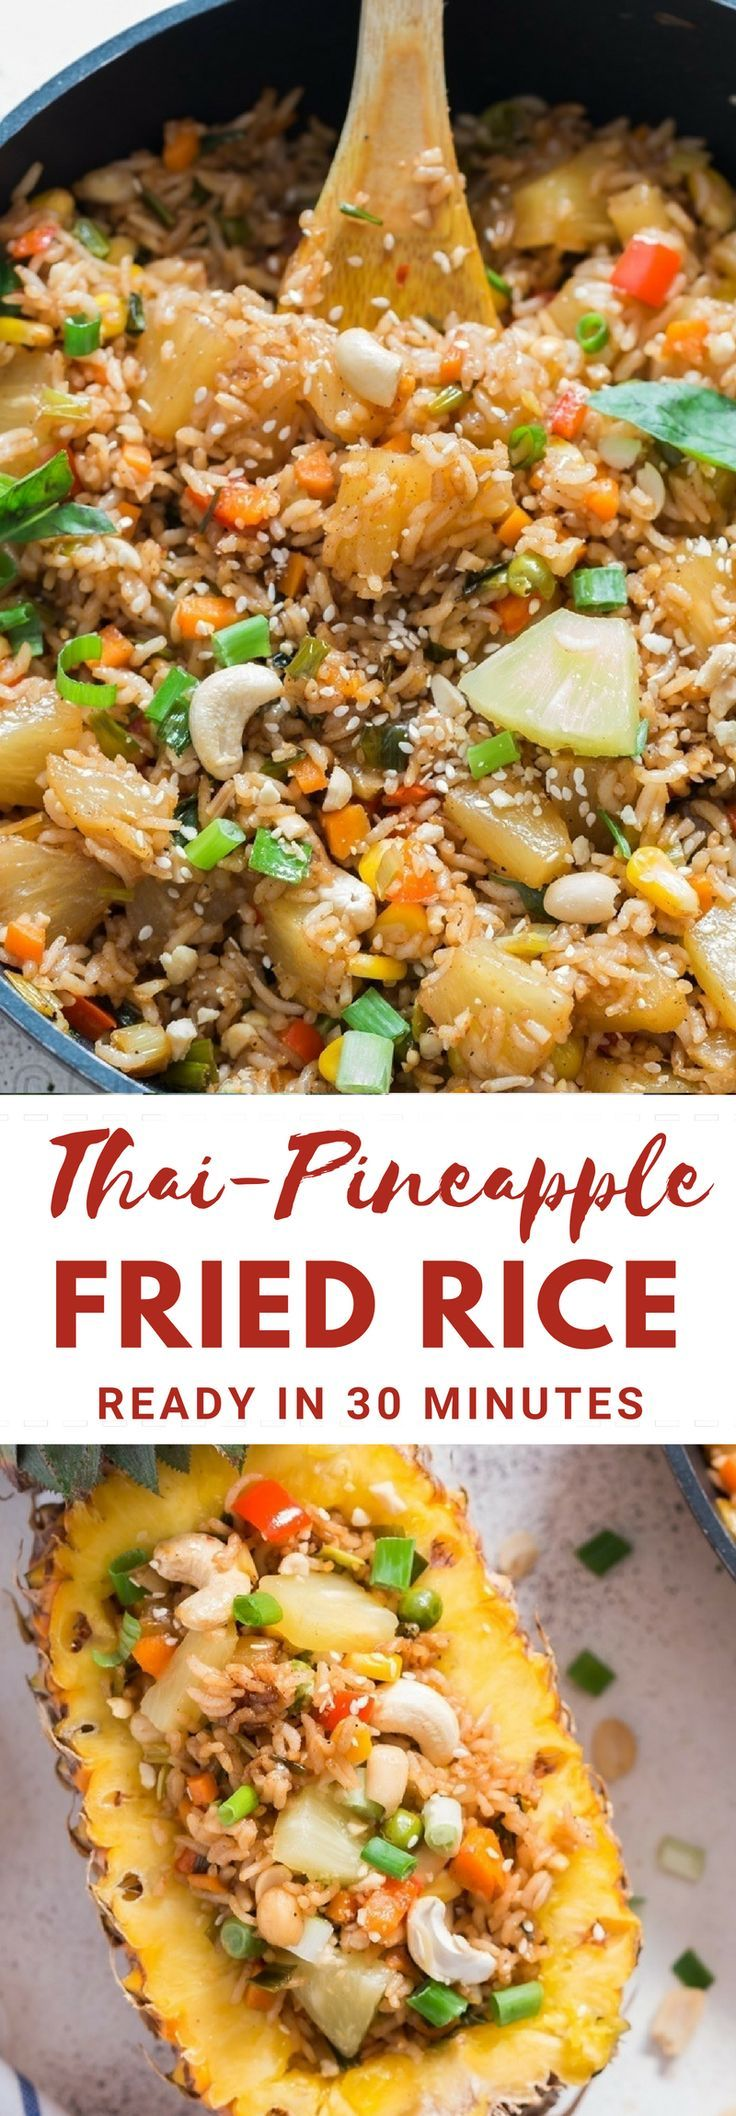 Thai Pineapple Fried Rice (KHAO PAD SAPPAROT) images